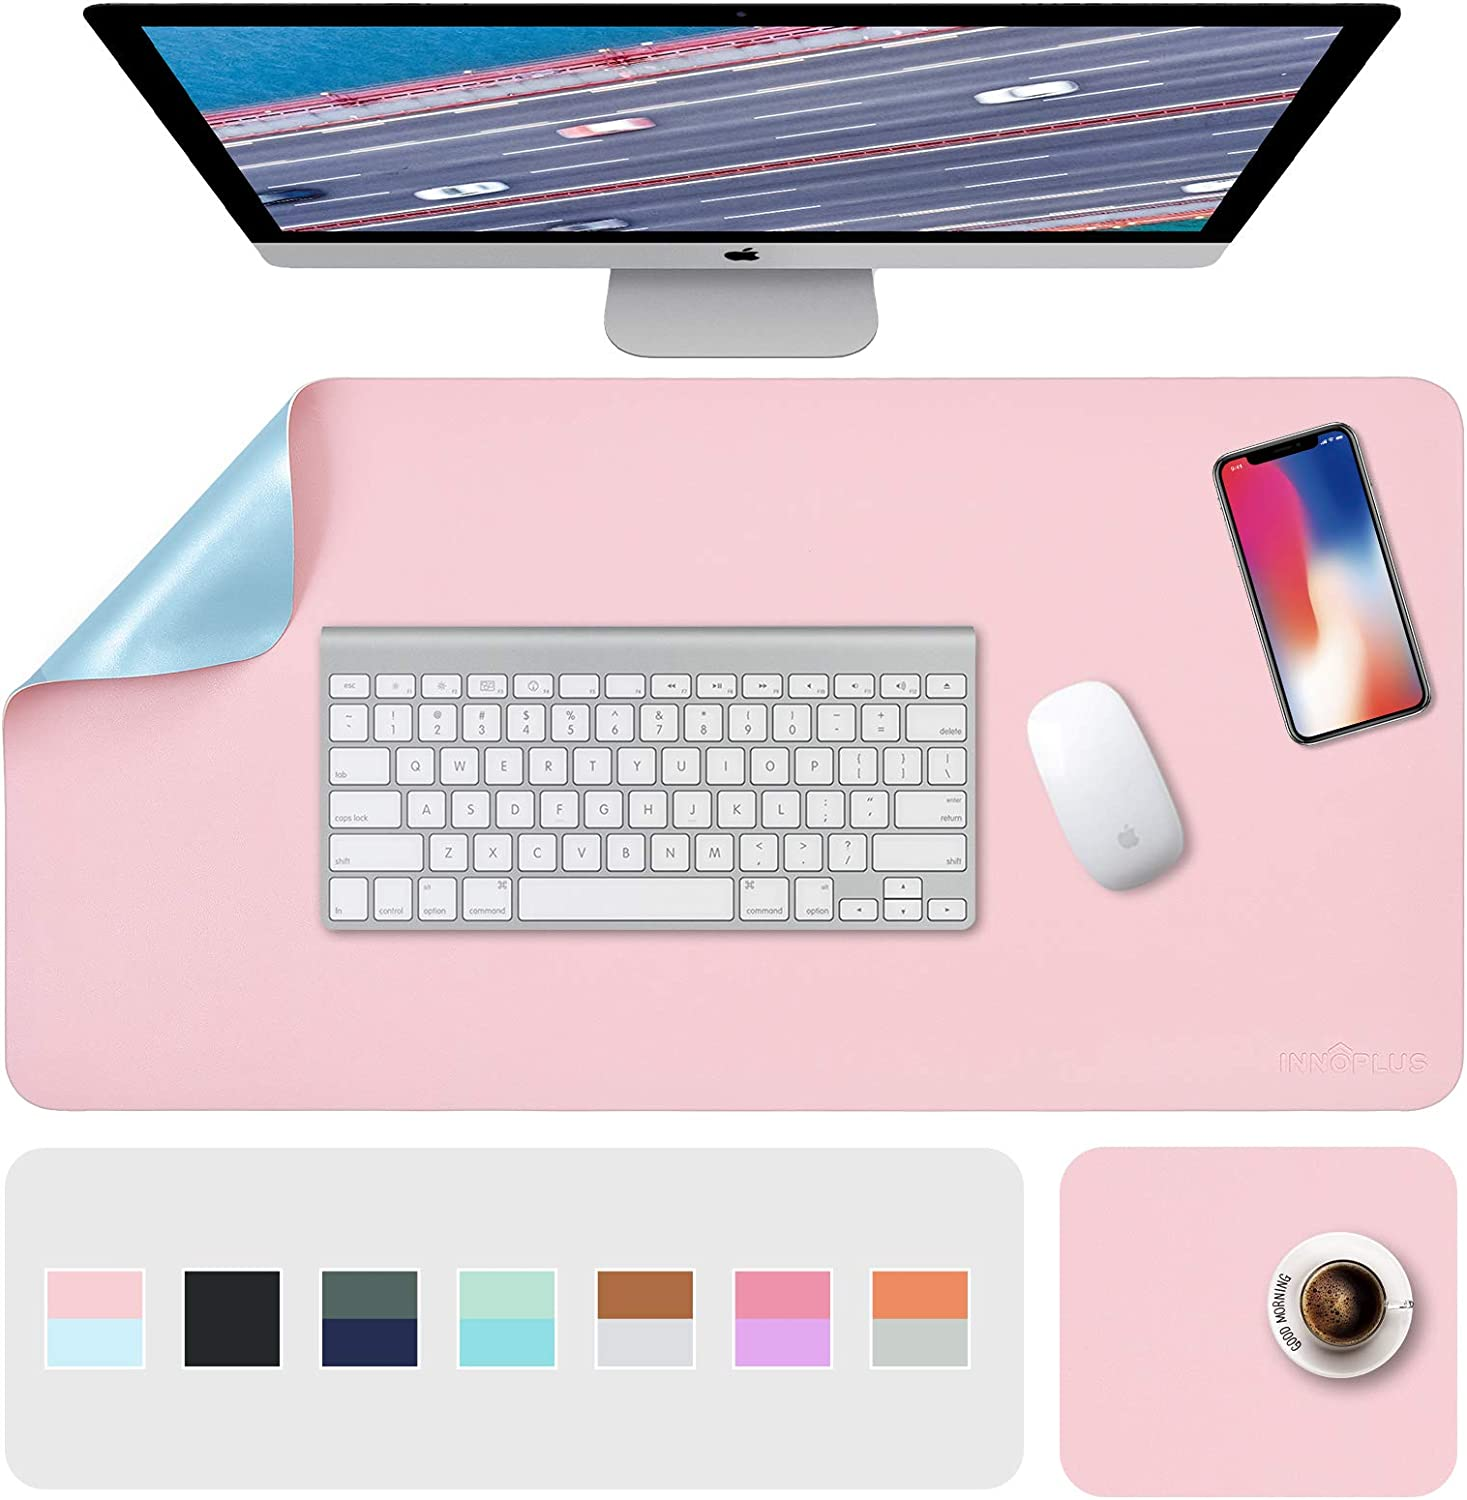 """Desk Pads, Pink Mouse Pad, Desk Mat, XL Desk Pads Dual-Sided Pink/Blue, 31.5"""" x 15.7"""" + 8""""x11"""" PU Leather Mouse Pad 2 Pack Waterproof, Mouse Pad for Laptop, Home Office Table Protector Blotter Gifts"""